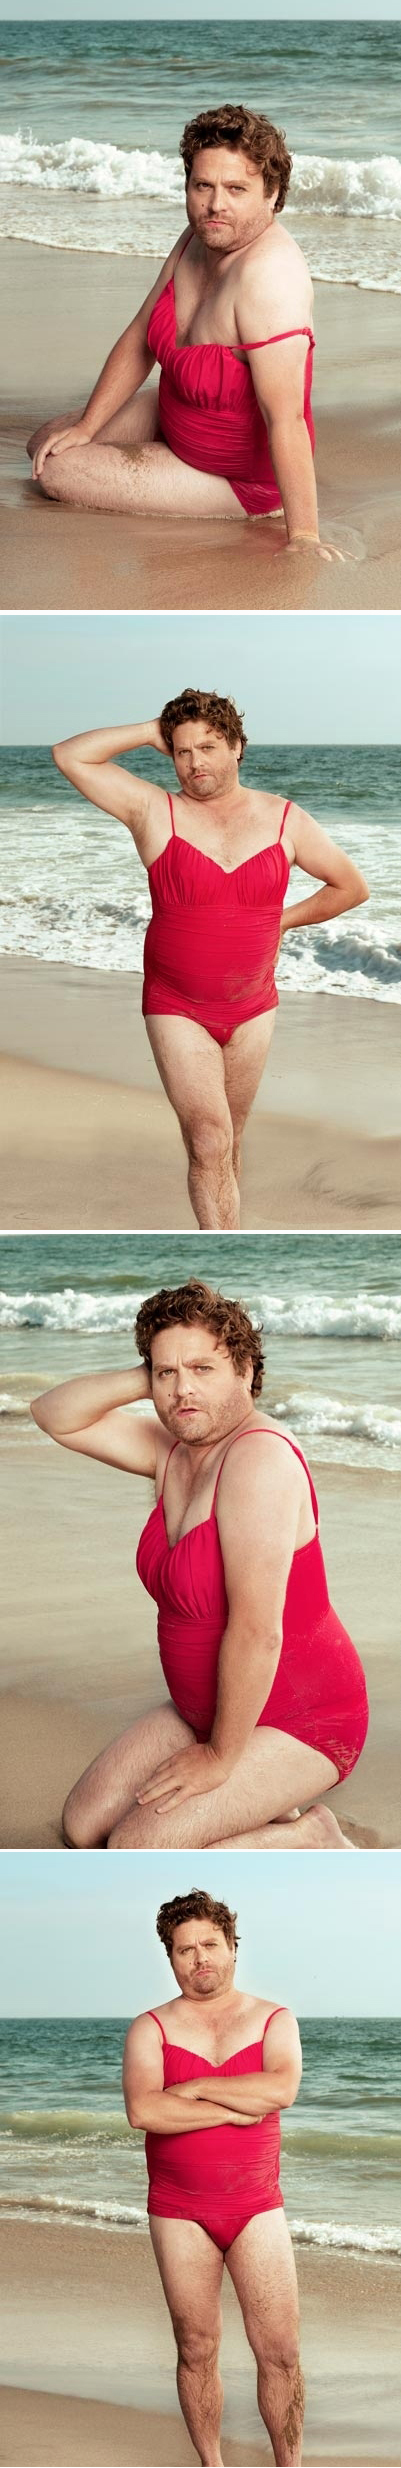 Zach Galifianakis Vanity Fair